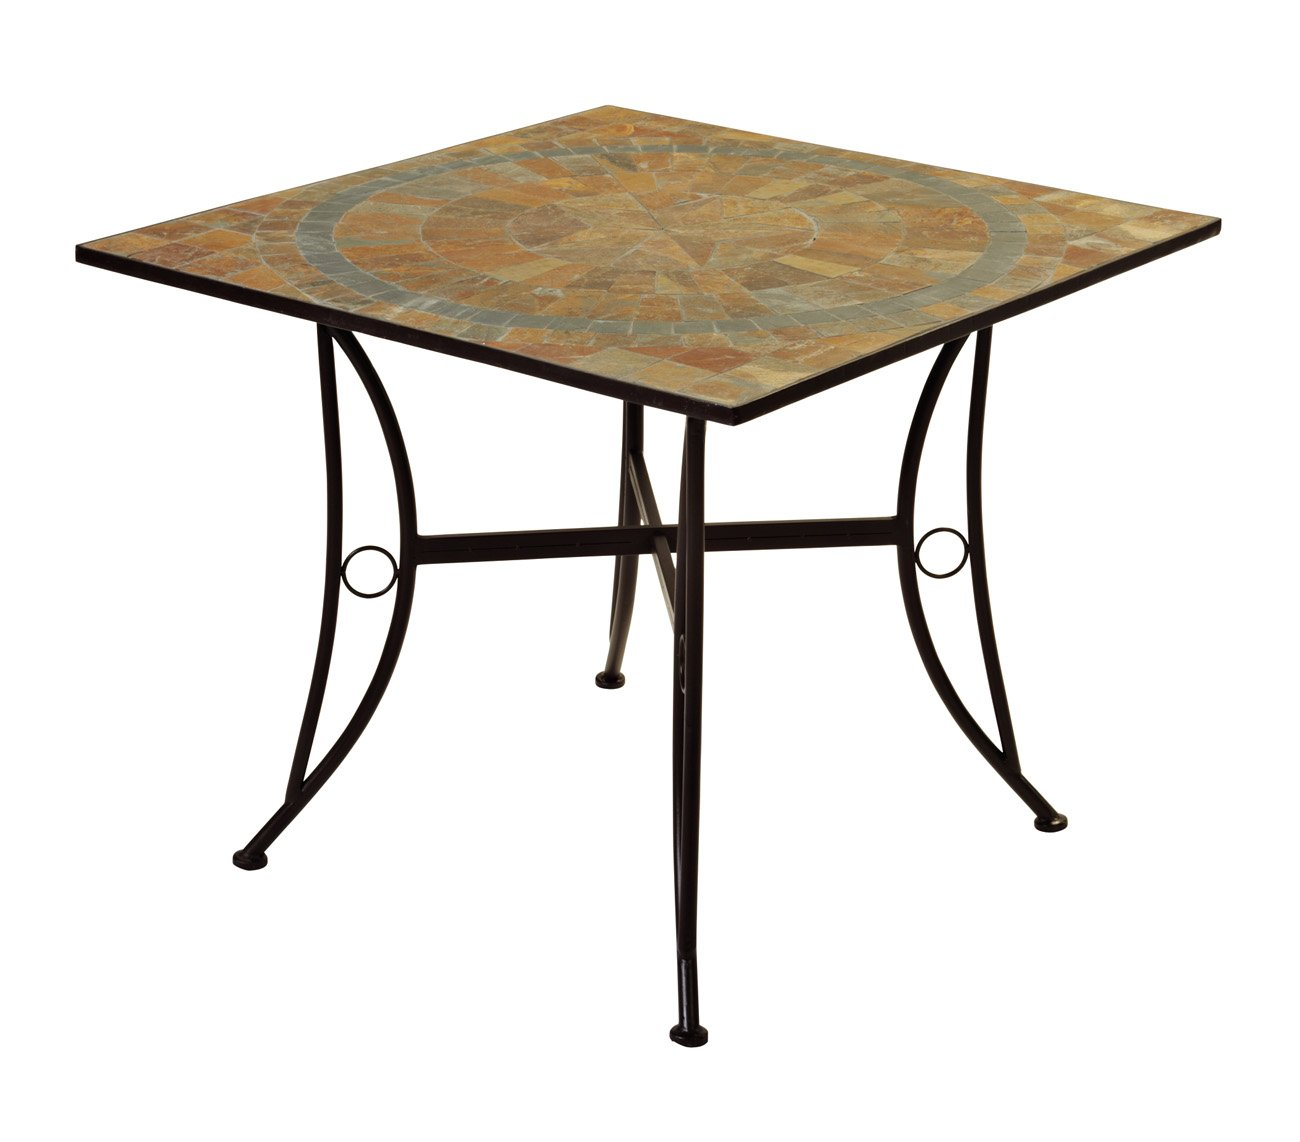 Zest Garden Brazos Slate Dining Table   Shop Furniture At HEB